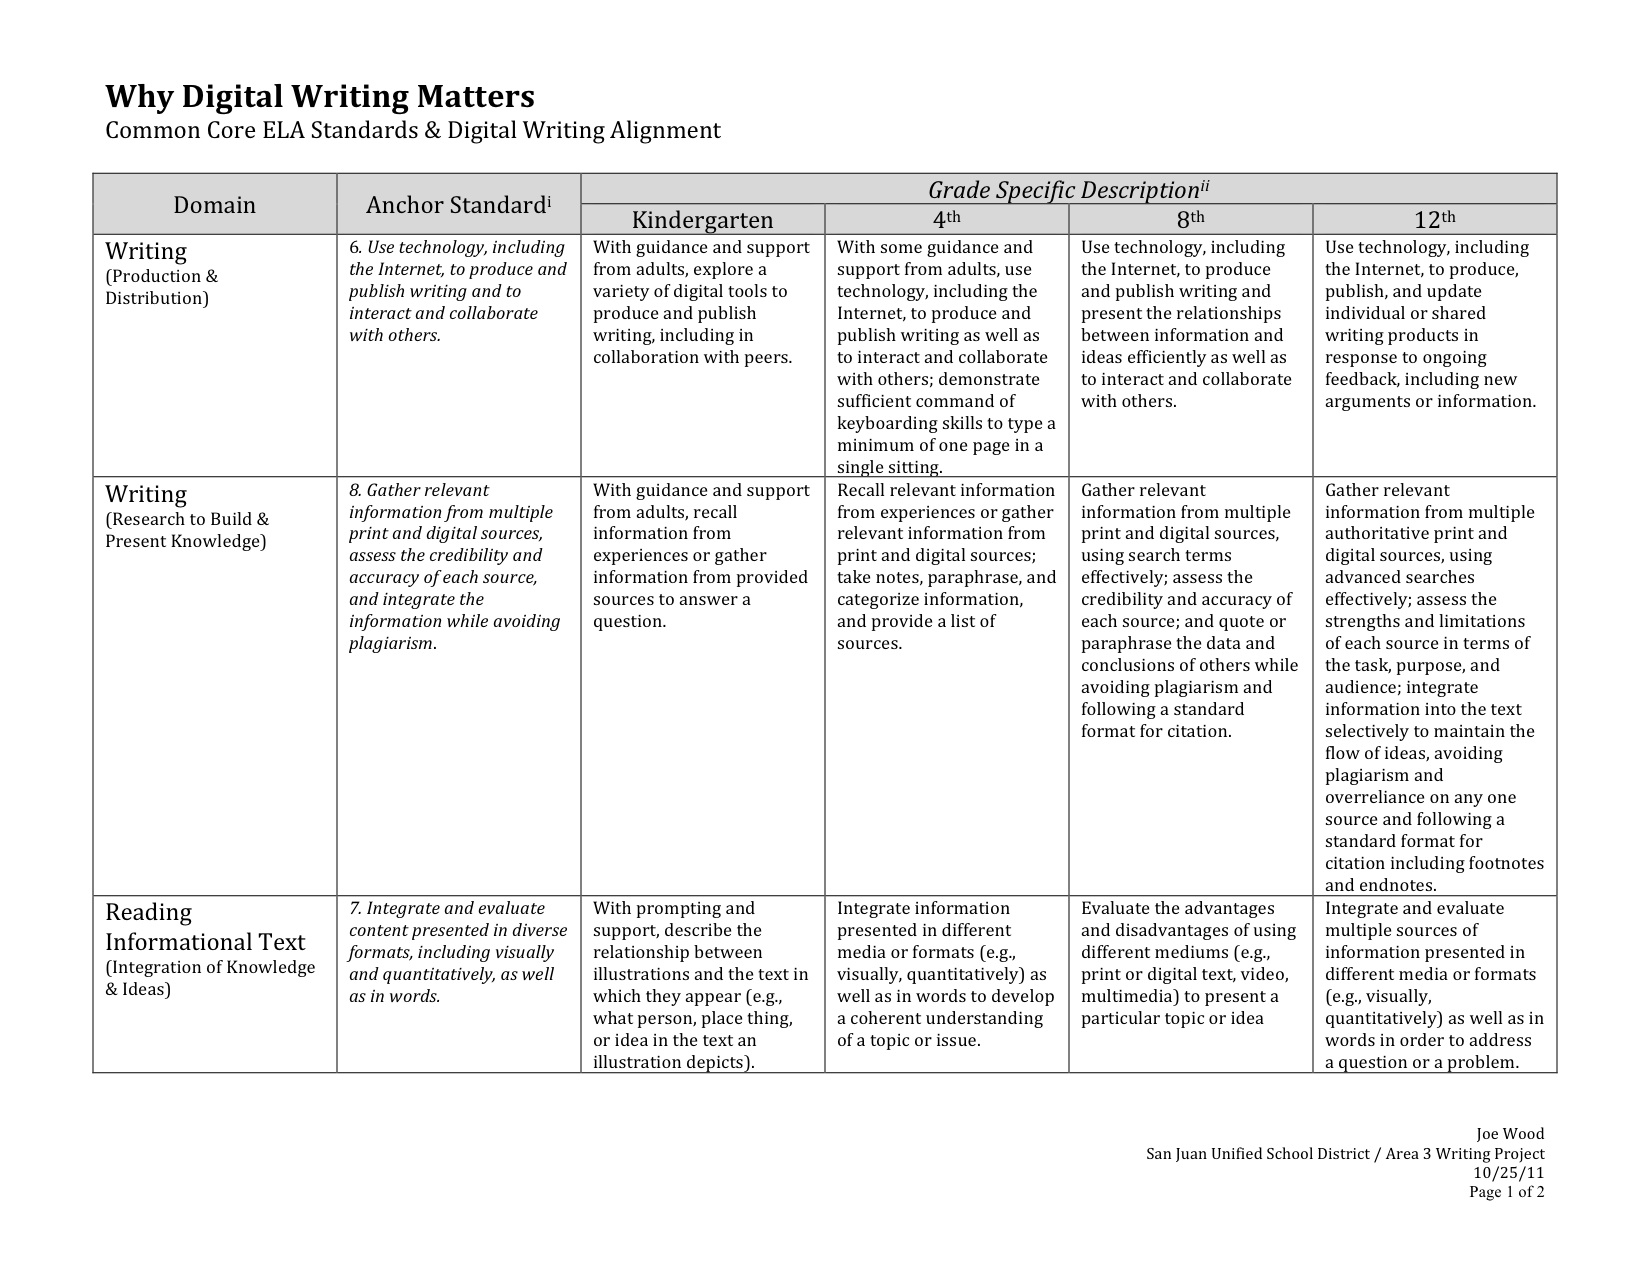 001 High School Research Paper Rubric Common Core Why Digital Writing Matters According To The Ela Unique Full